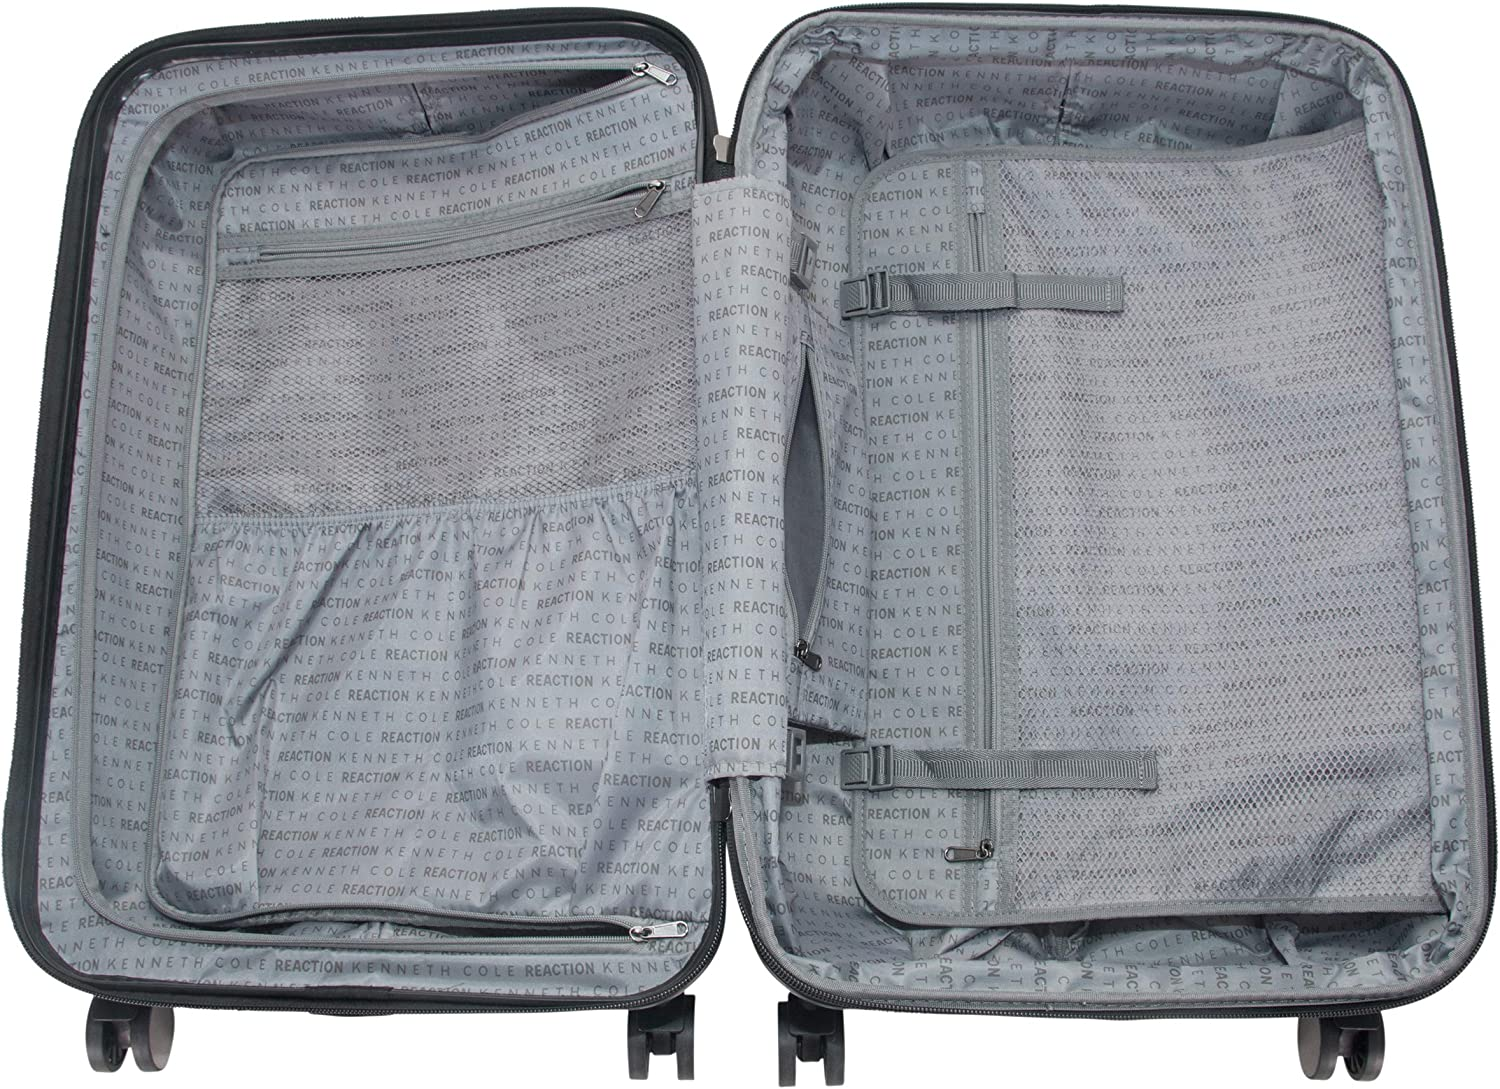 Teal Kenneth Cole Reaction Continuum 20 Hardside 8-Wheel Expandable Upright Carry-on Spinner Luggage